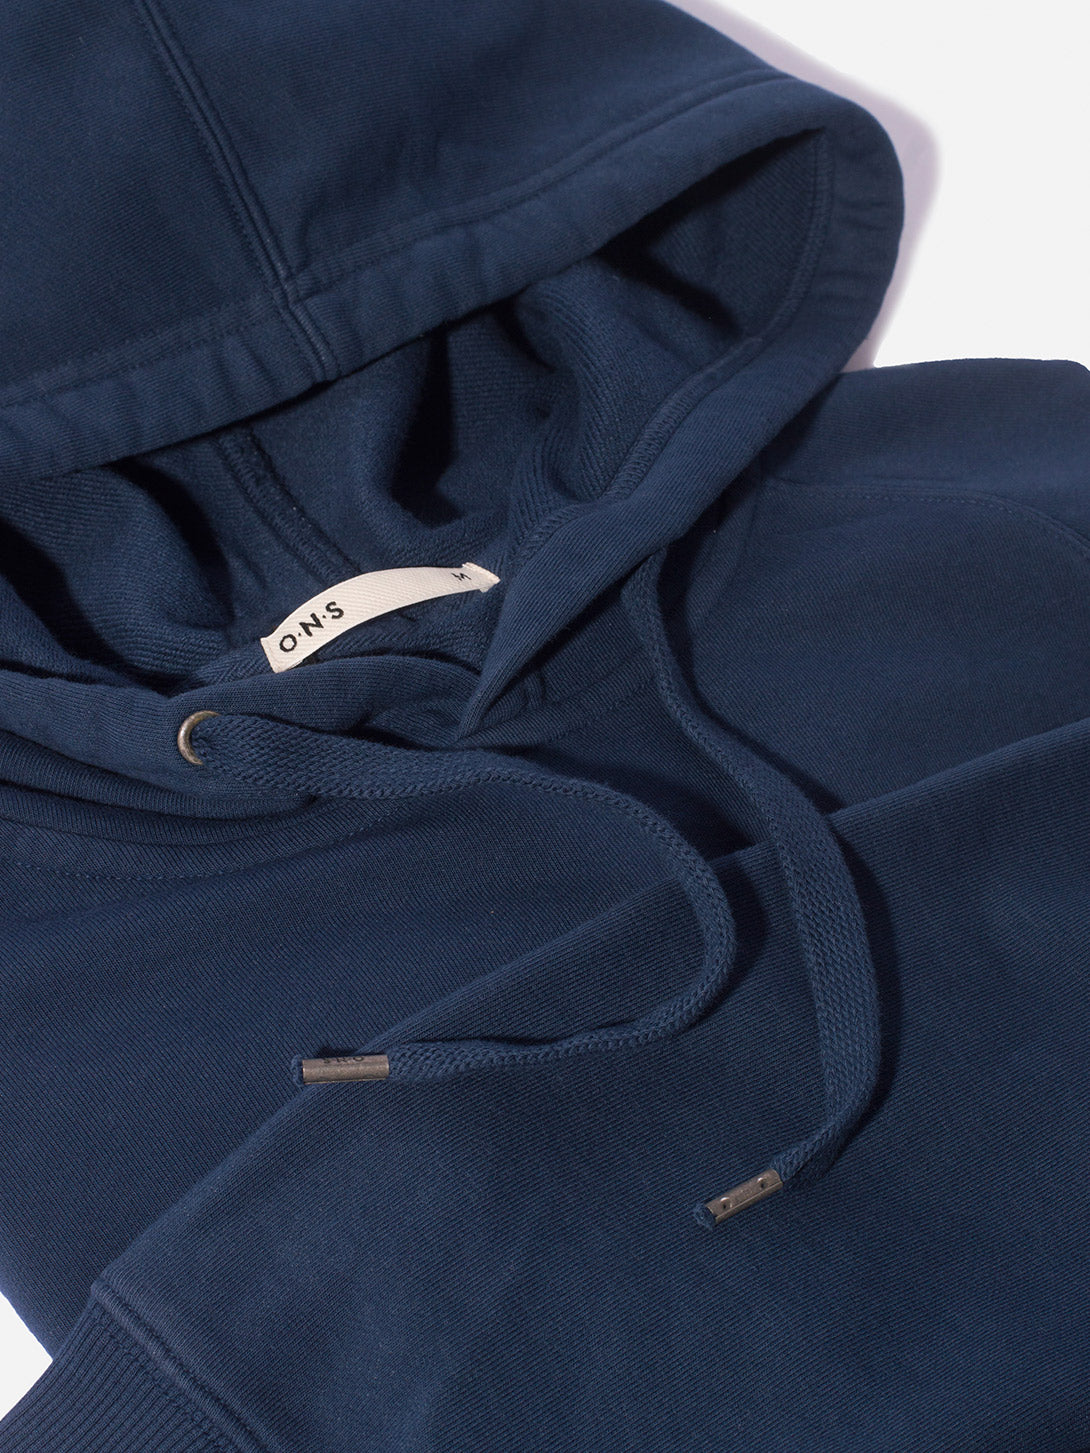 MENS FRENCH TERRY HOODIE SWEATSHIRT NAVY